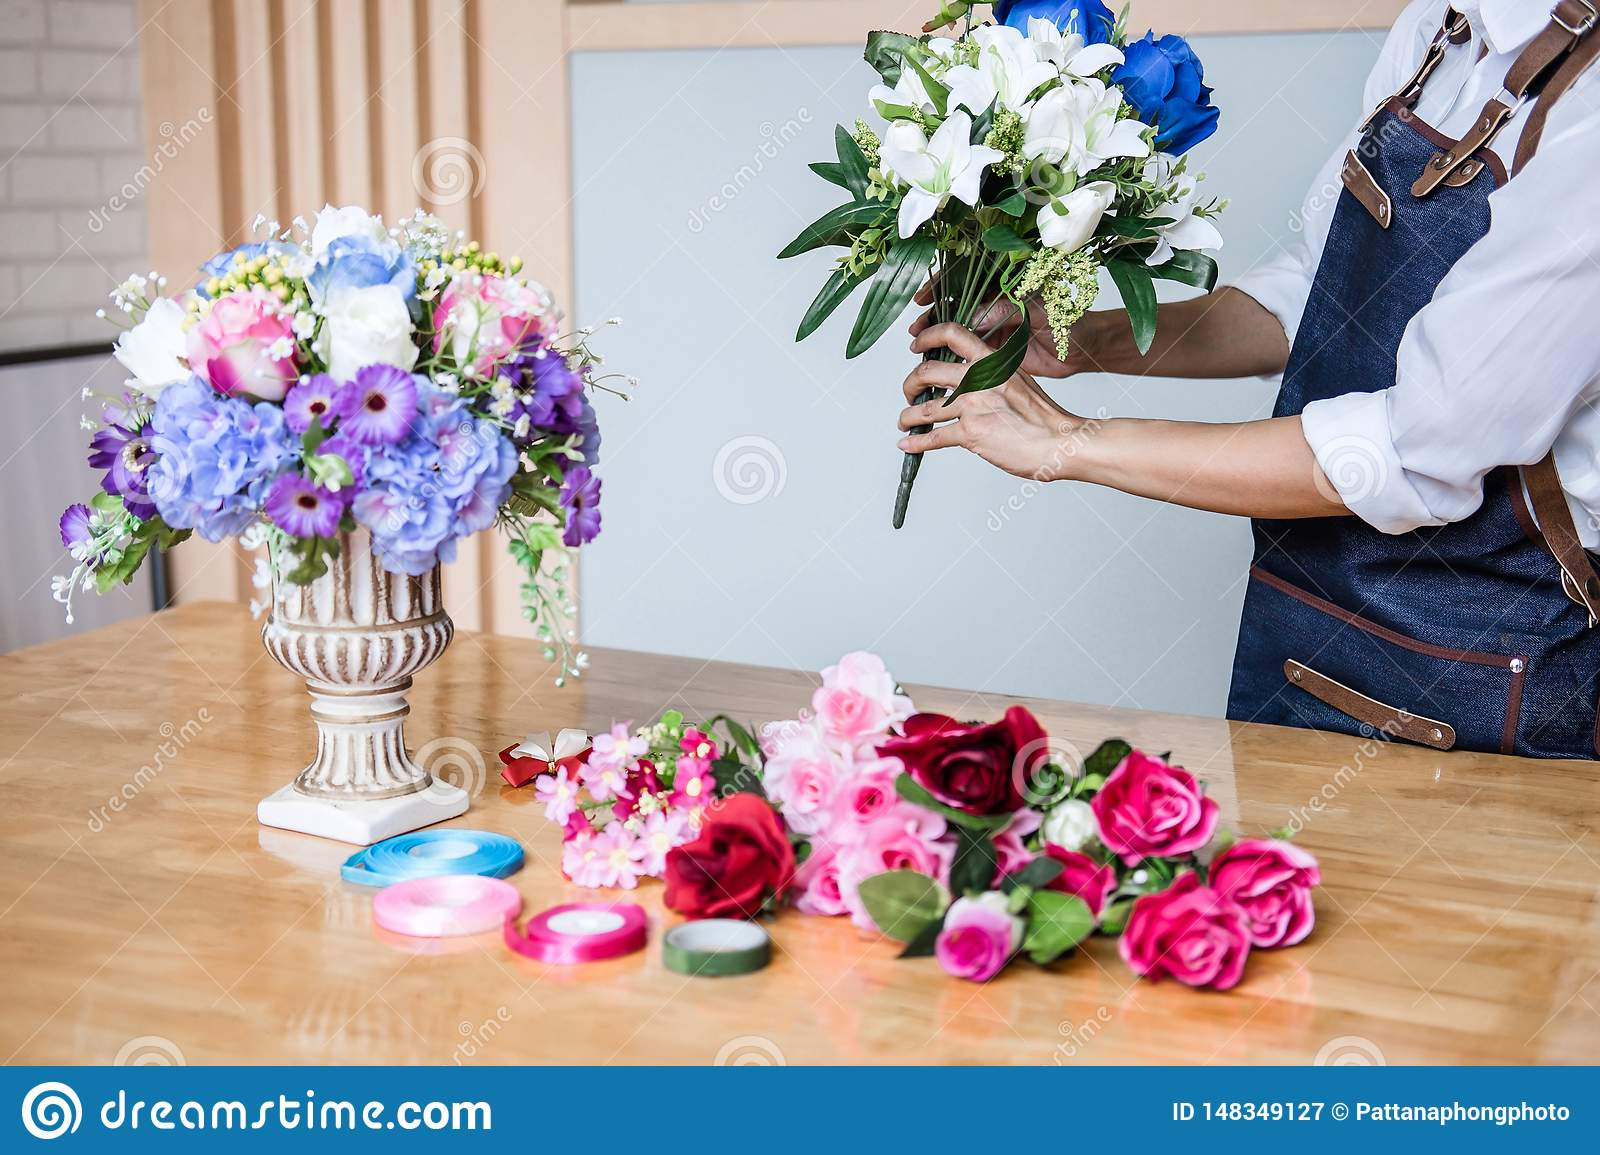 Arranging Artificial Flowers Vest Decoration At Home Young Woman Florist Work Making Organizing Diy Artificial Flower Craft And Stock Image Image Of Happy Decoration 148349127